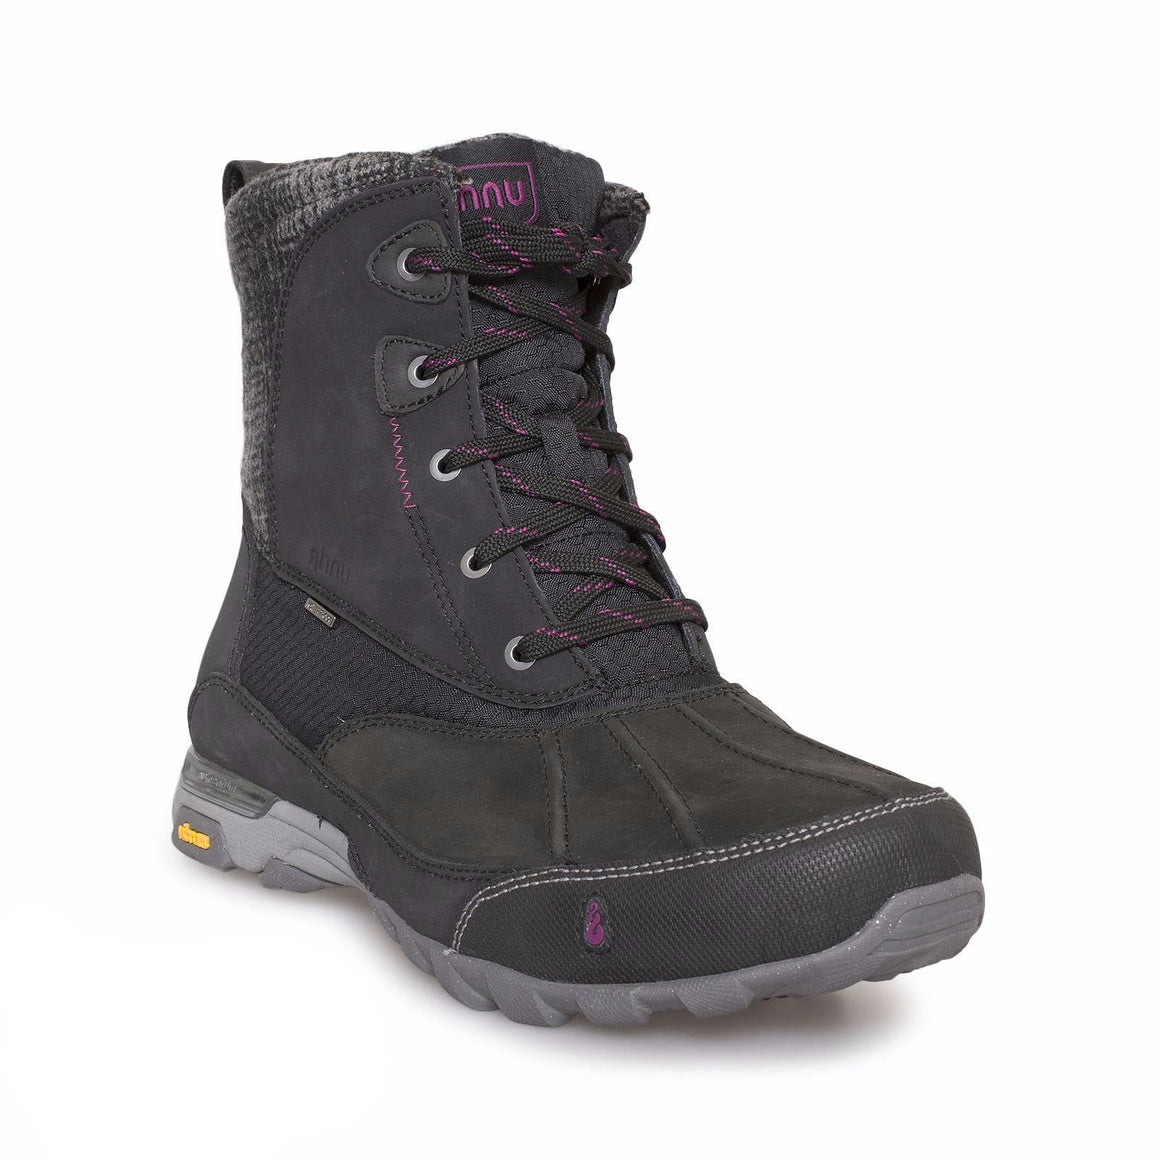 Ahnu Sugar Peak Black Boots